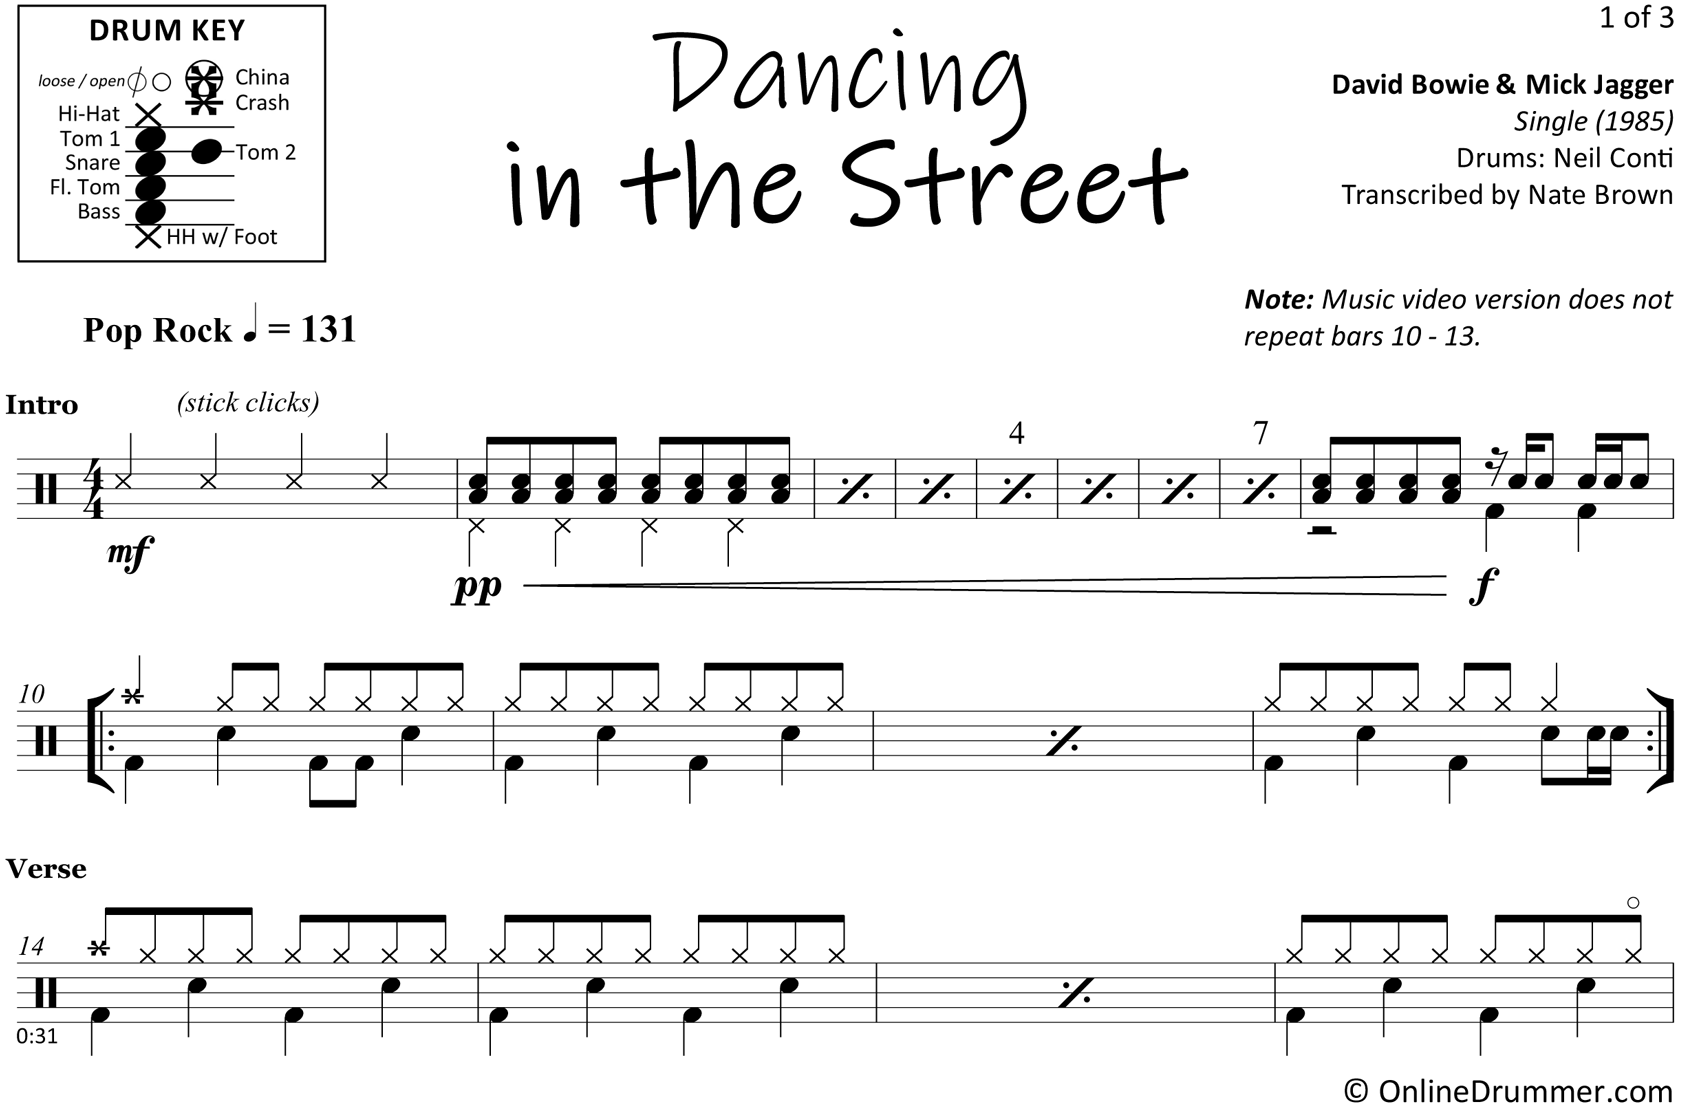 Dancing in the Street - David Bowie & Mick Jagger - Drum Sheet Music